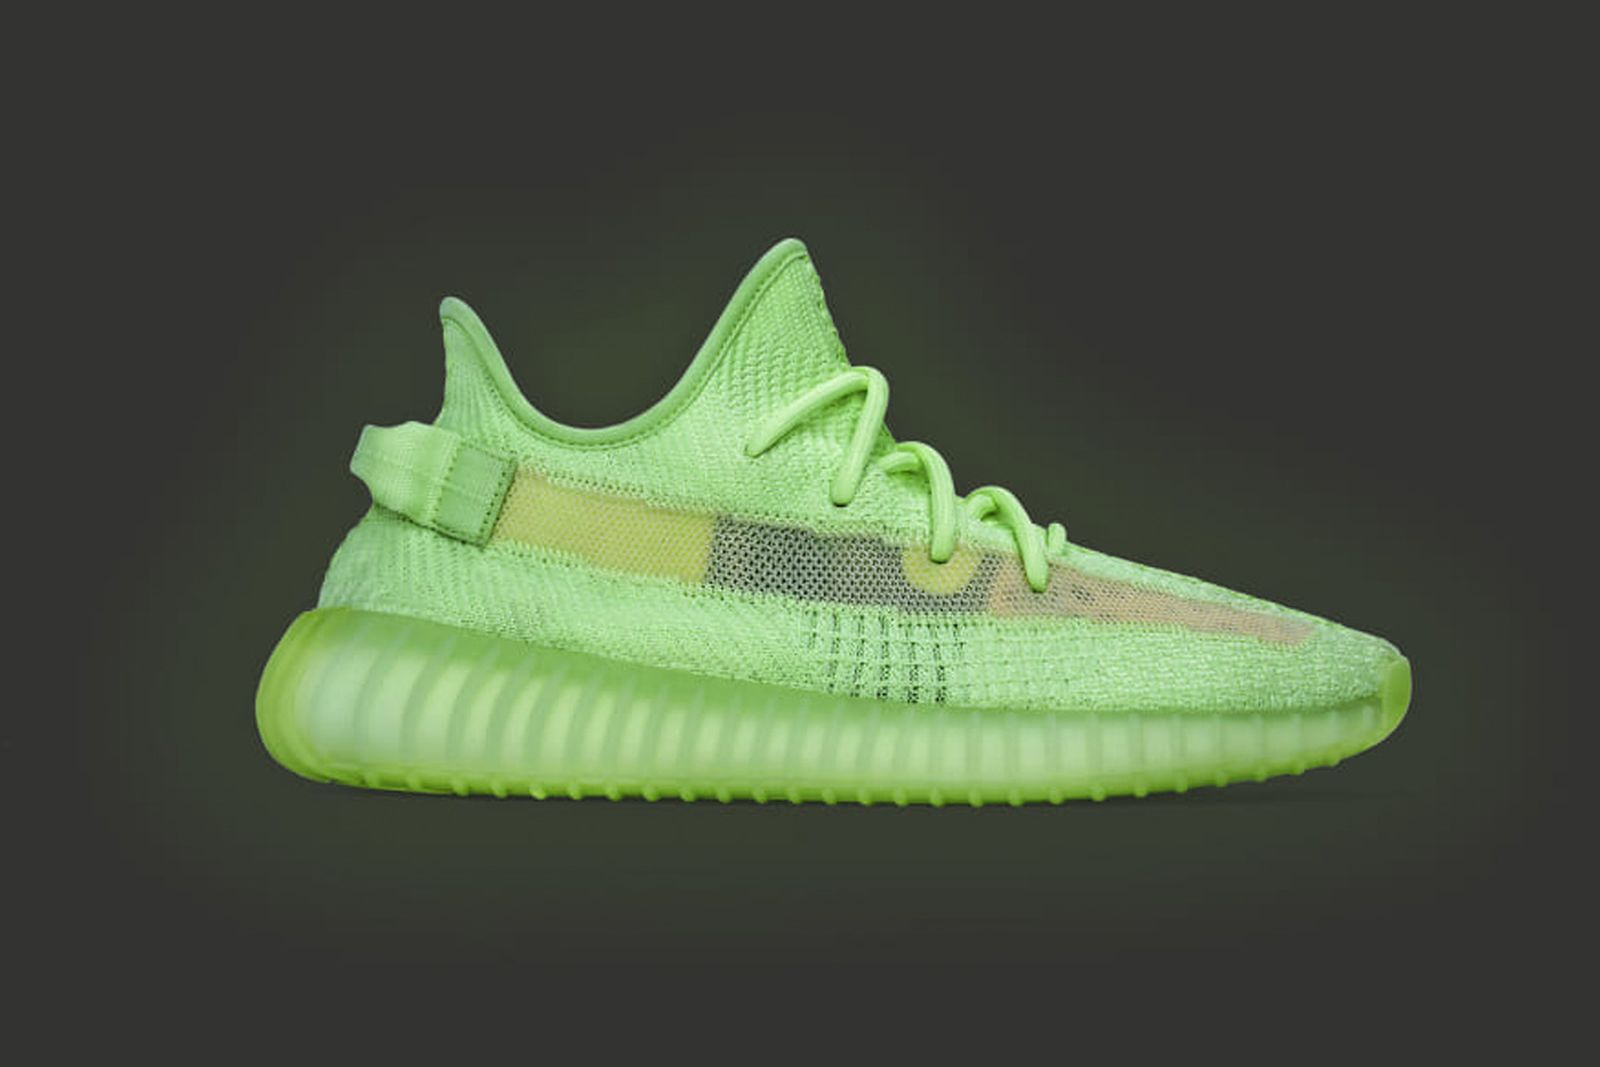 adidas yeezy boost 350 v2 glow dark release date price official Grailed StockX adidas Originals YEEZY Boost 350 V2